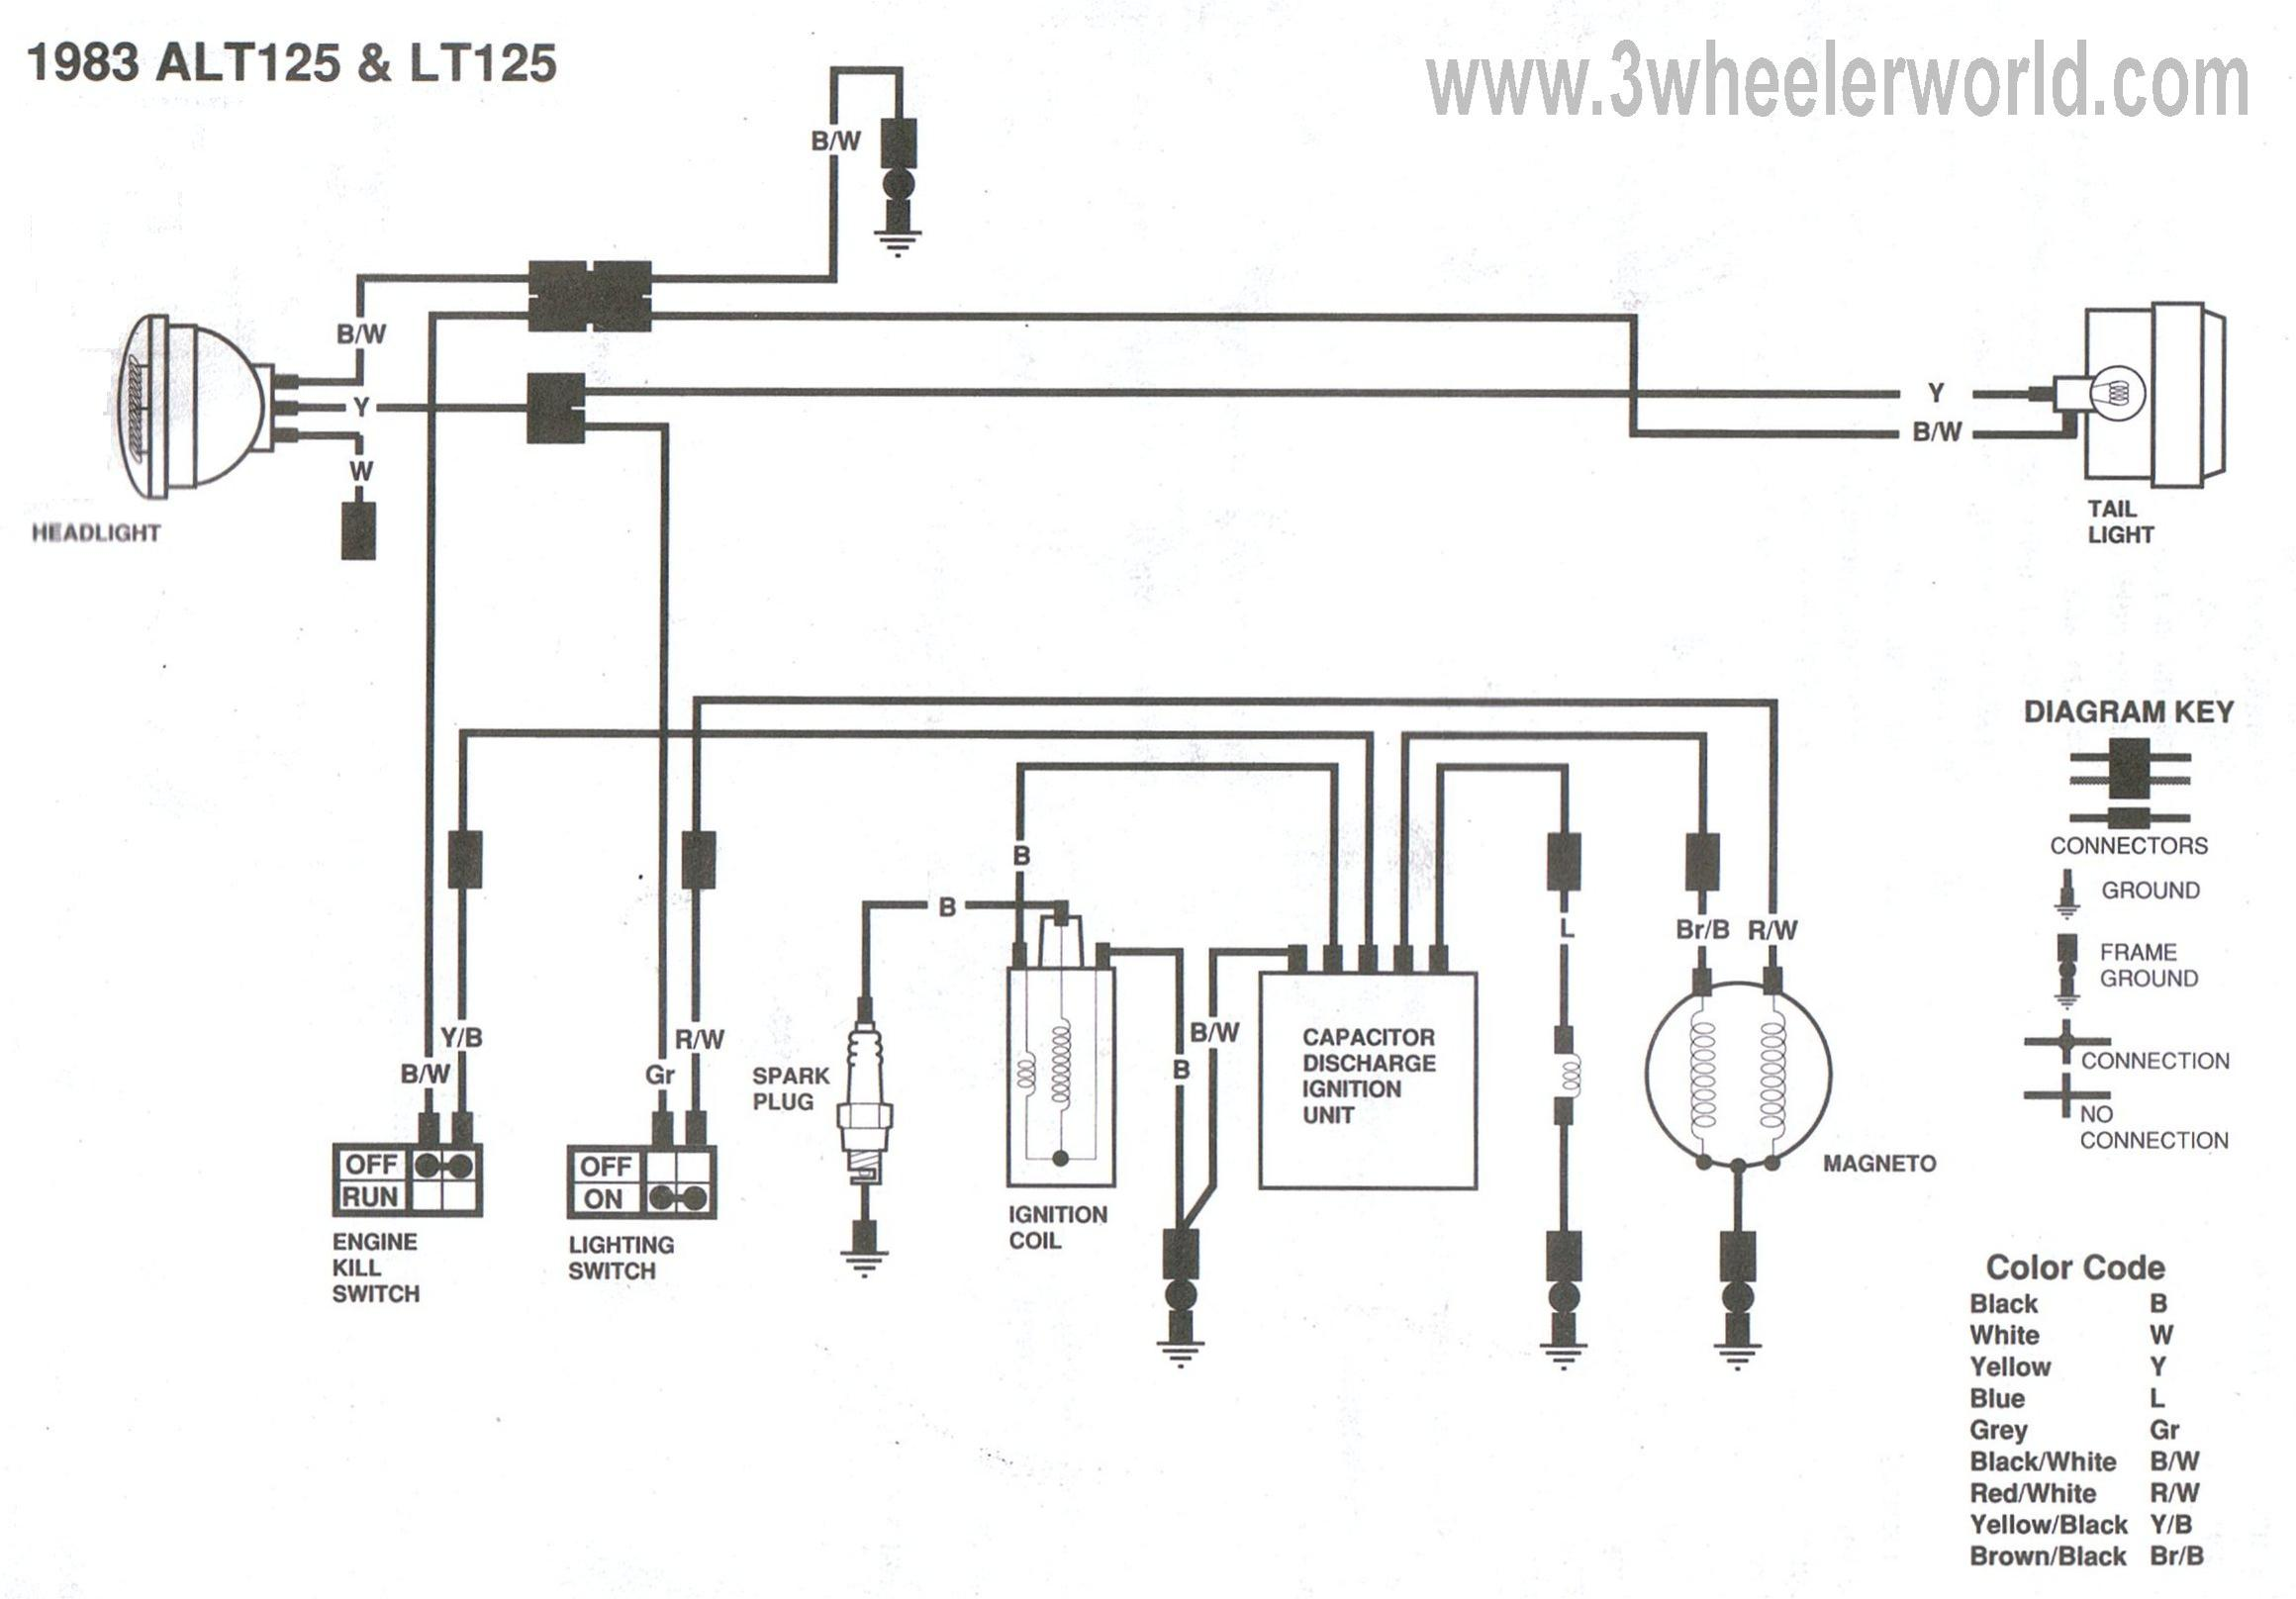 3wheeler world suzuki alt125 2000 cougar fuse box diagram under dash